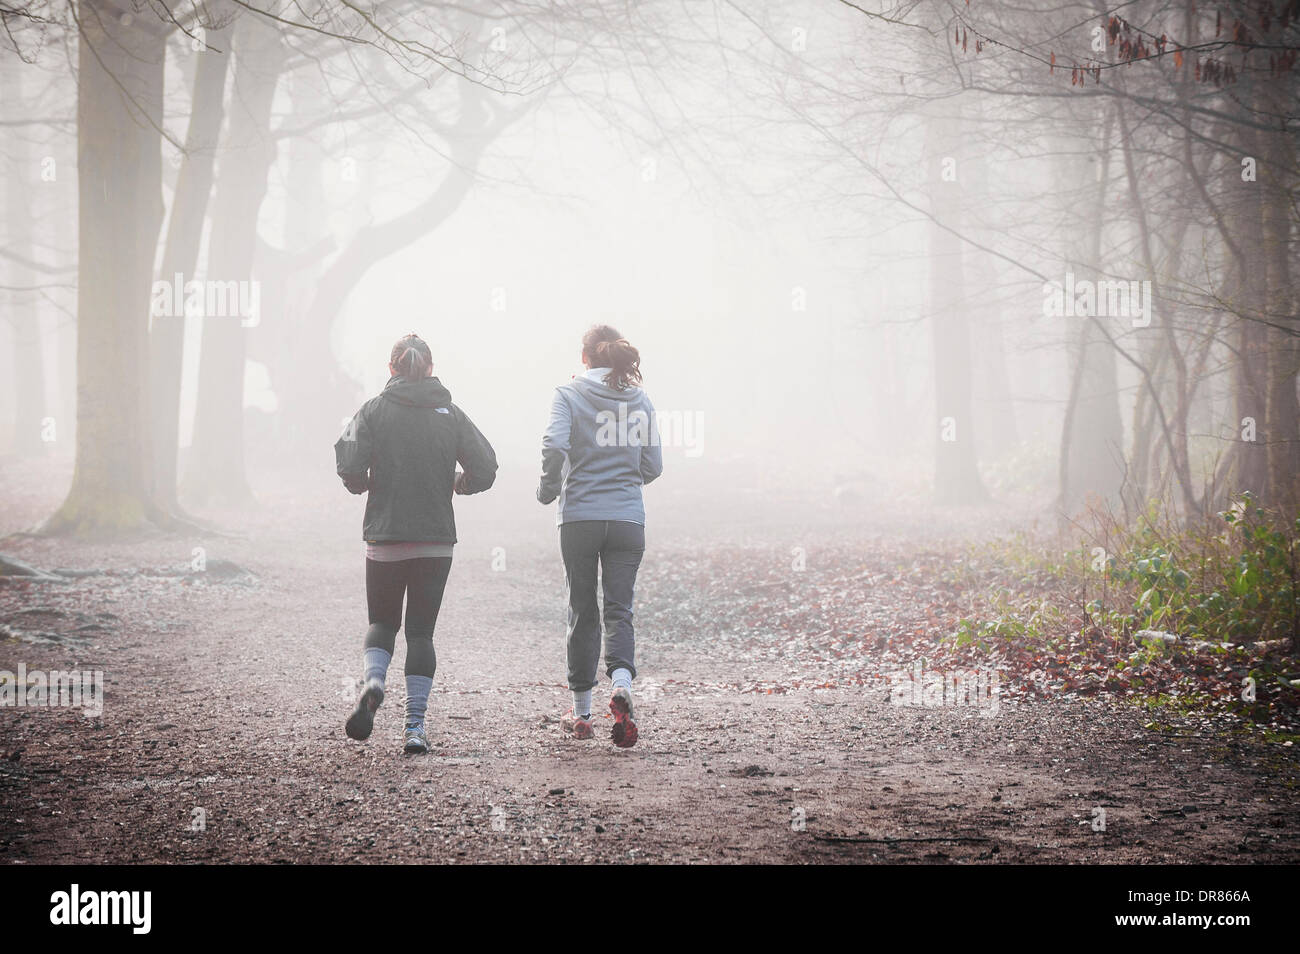 Brentwood, Essex, UK. January 21st 2014  Two girls running through the thick fog shrouding the Essex countryside.  Photographer: Gordon Scammell/Alamy Live News - Stock Image